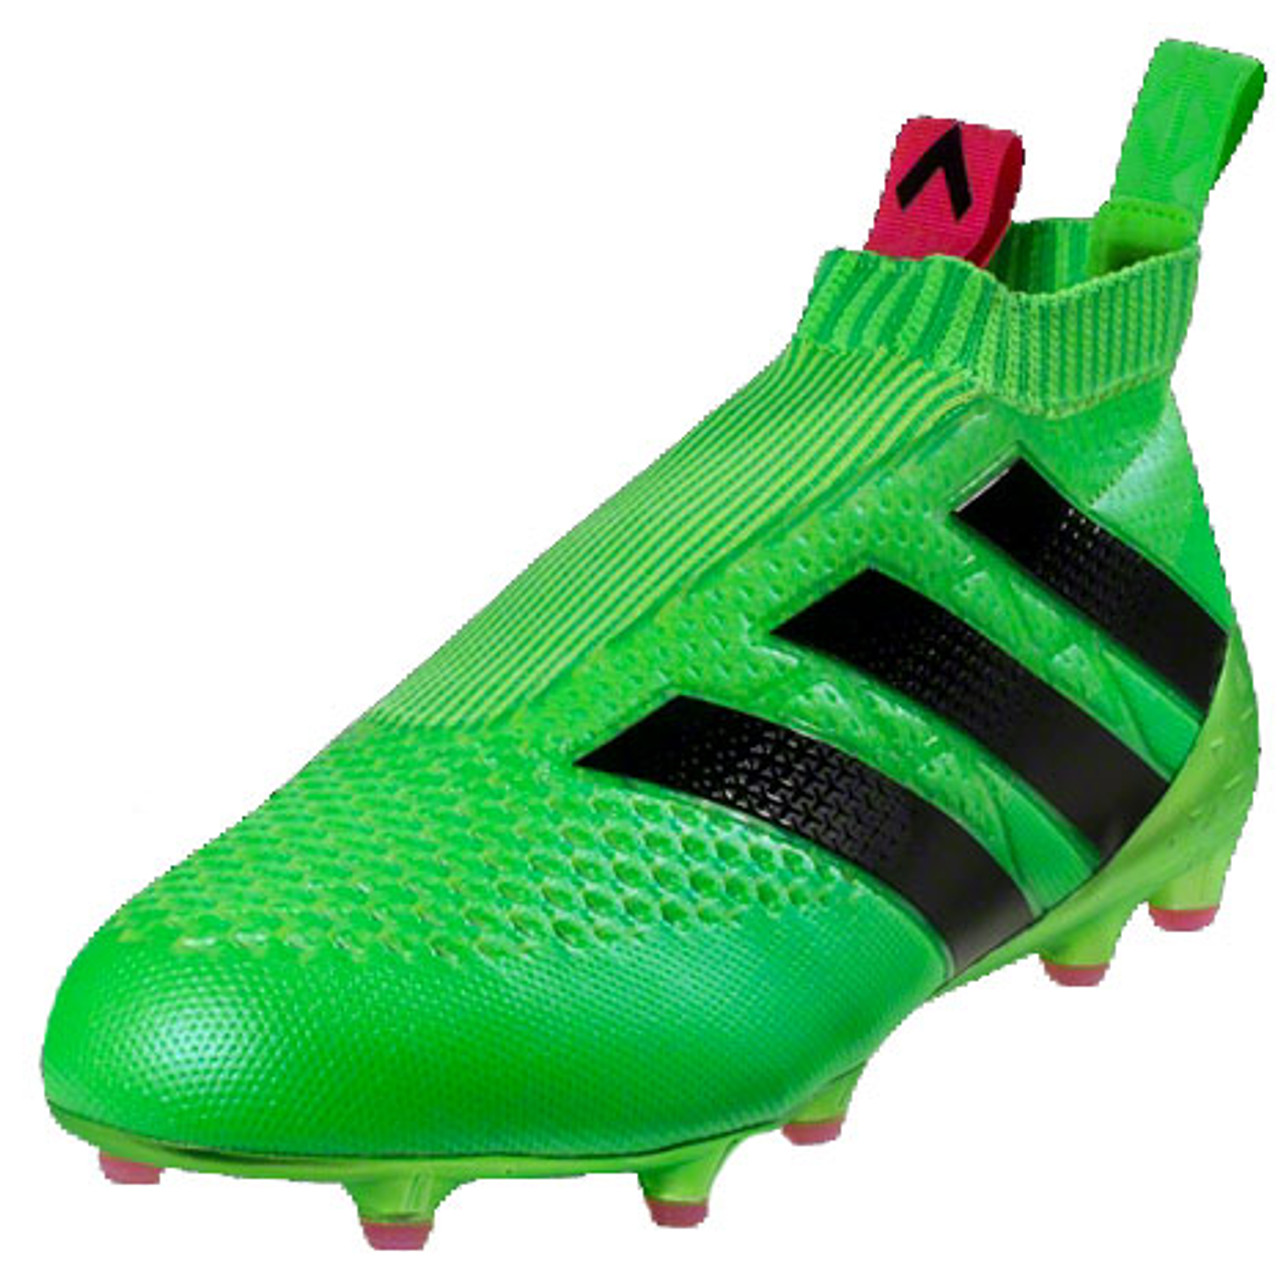 pretty nice 92e91 782f5 ADIDAS ACE 17+ PURECONTROL solar green/black